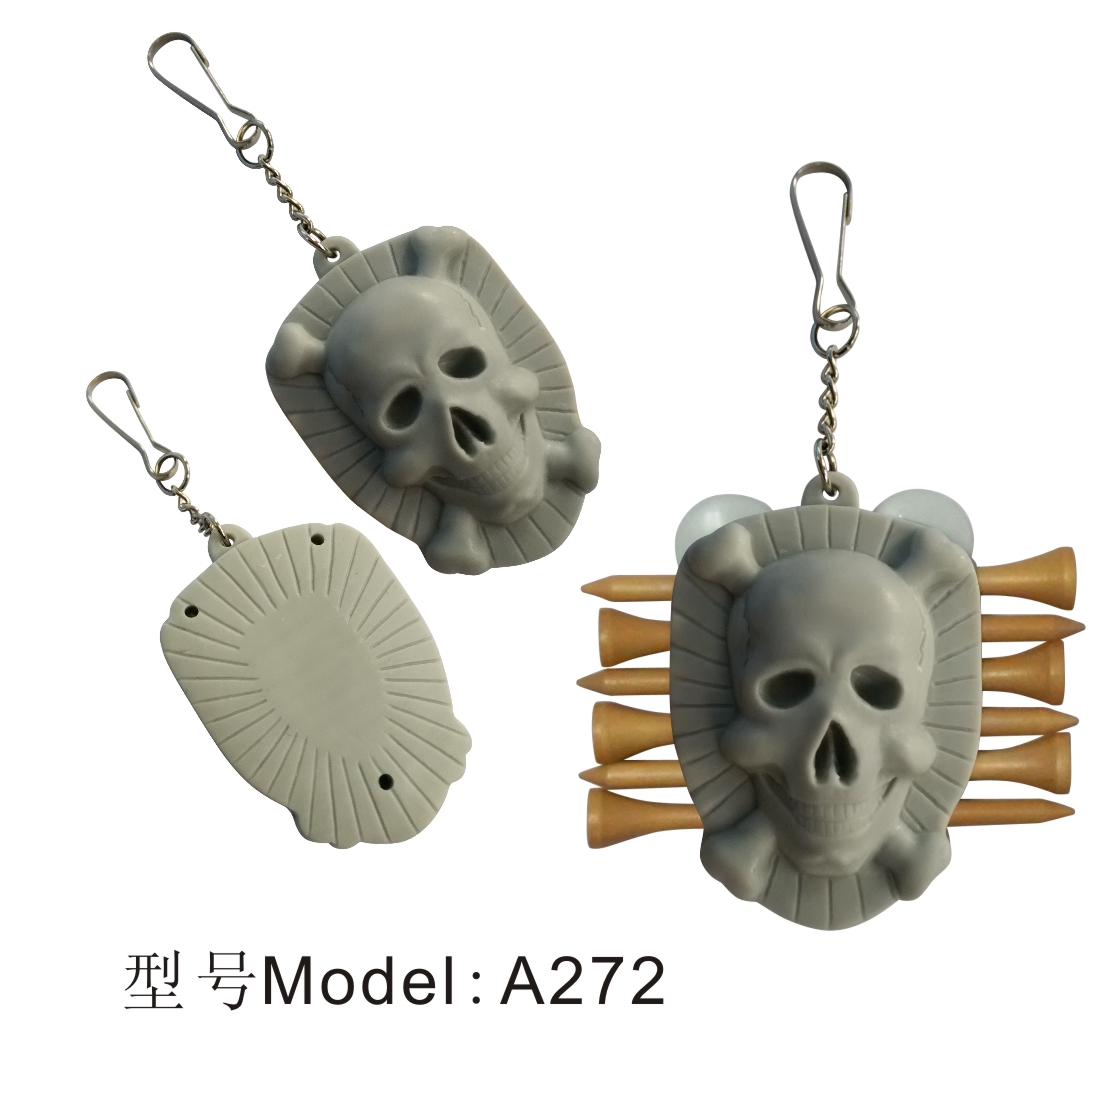 Outdoor Golf TeeSkull Golf Tees Holder Carrier 6 Wooden/Plactic Golf Tees With 3 Ball Markers And Keychain